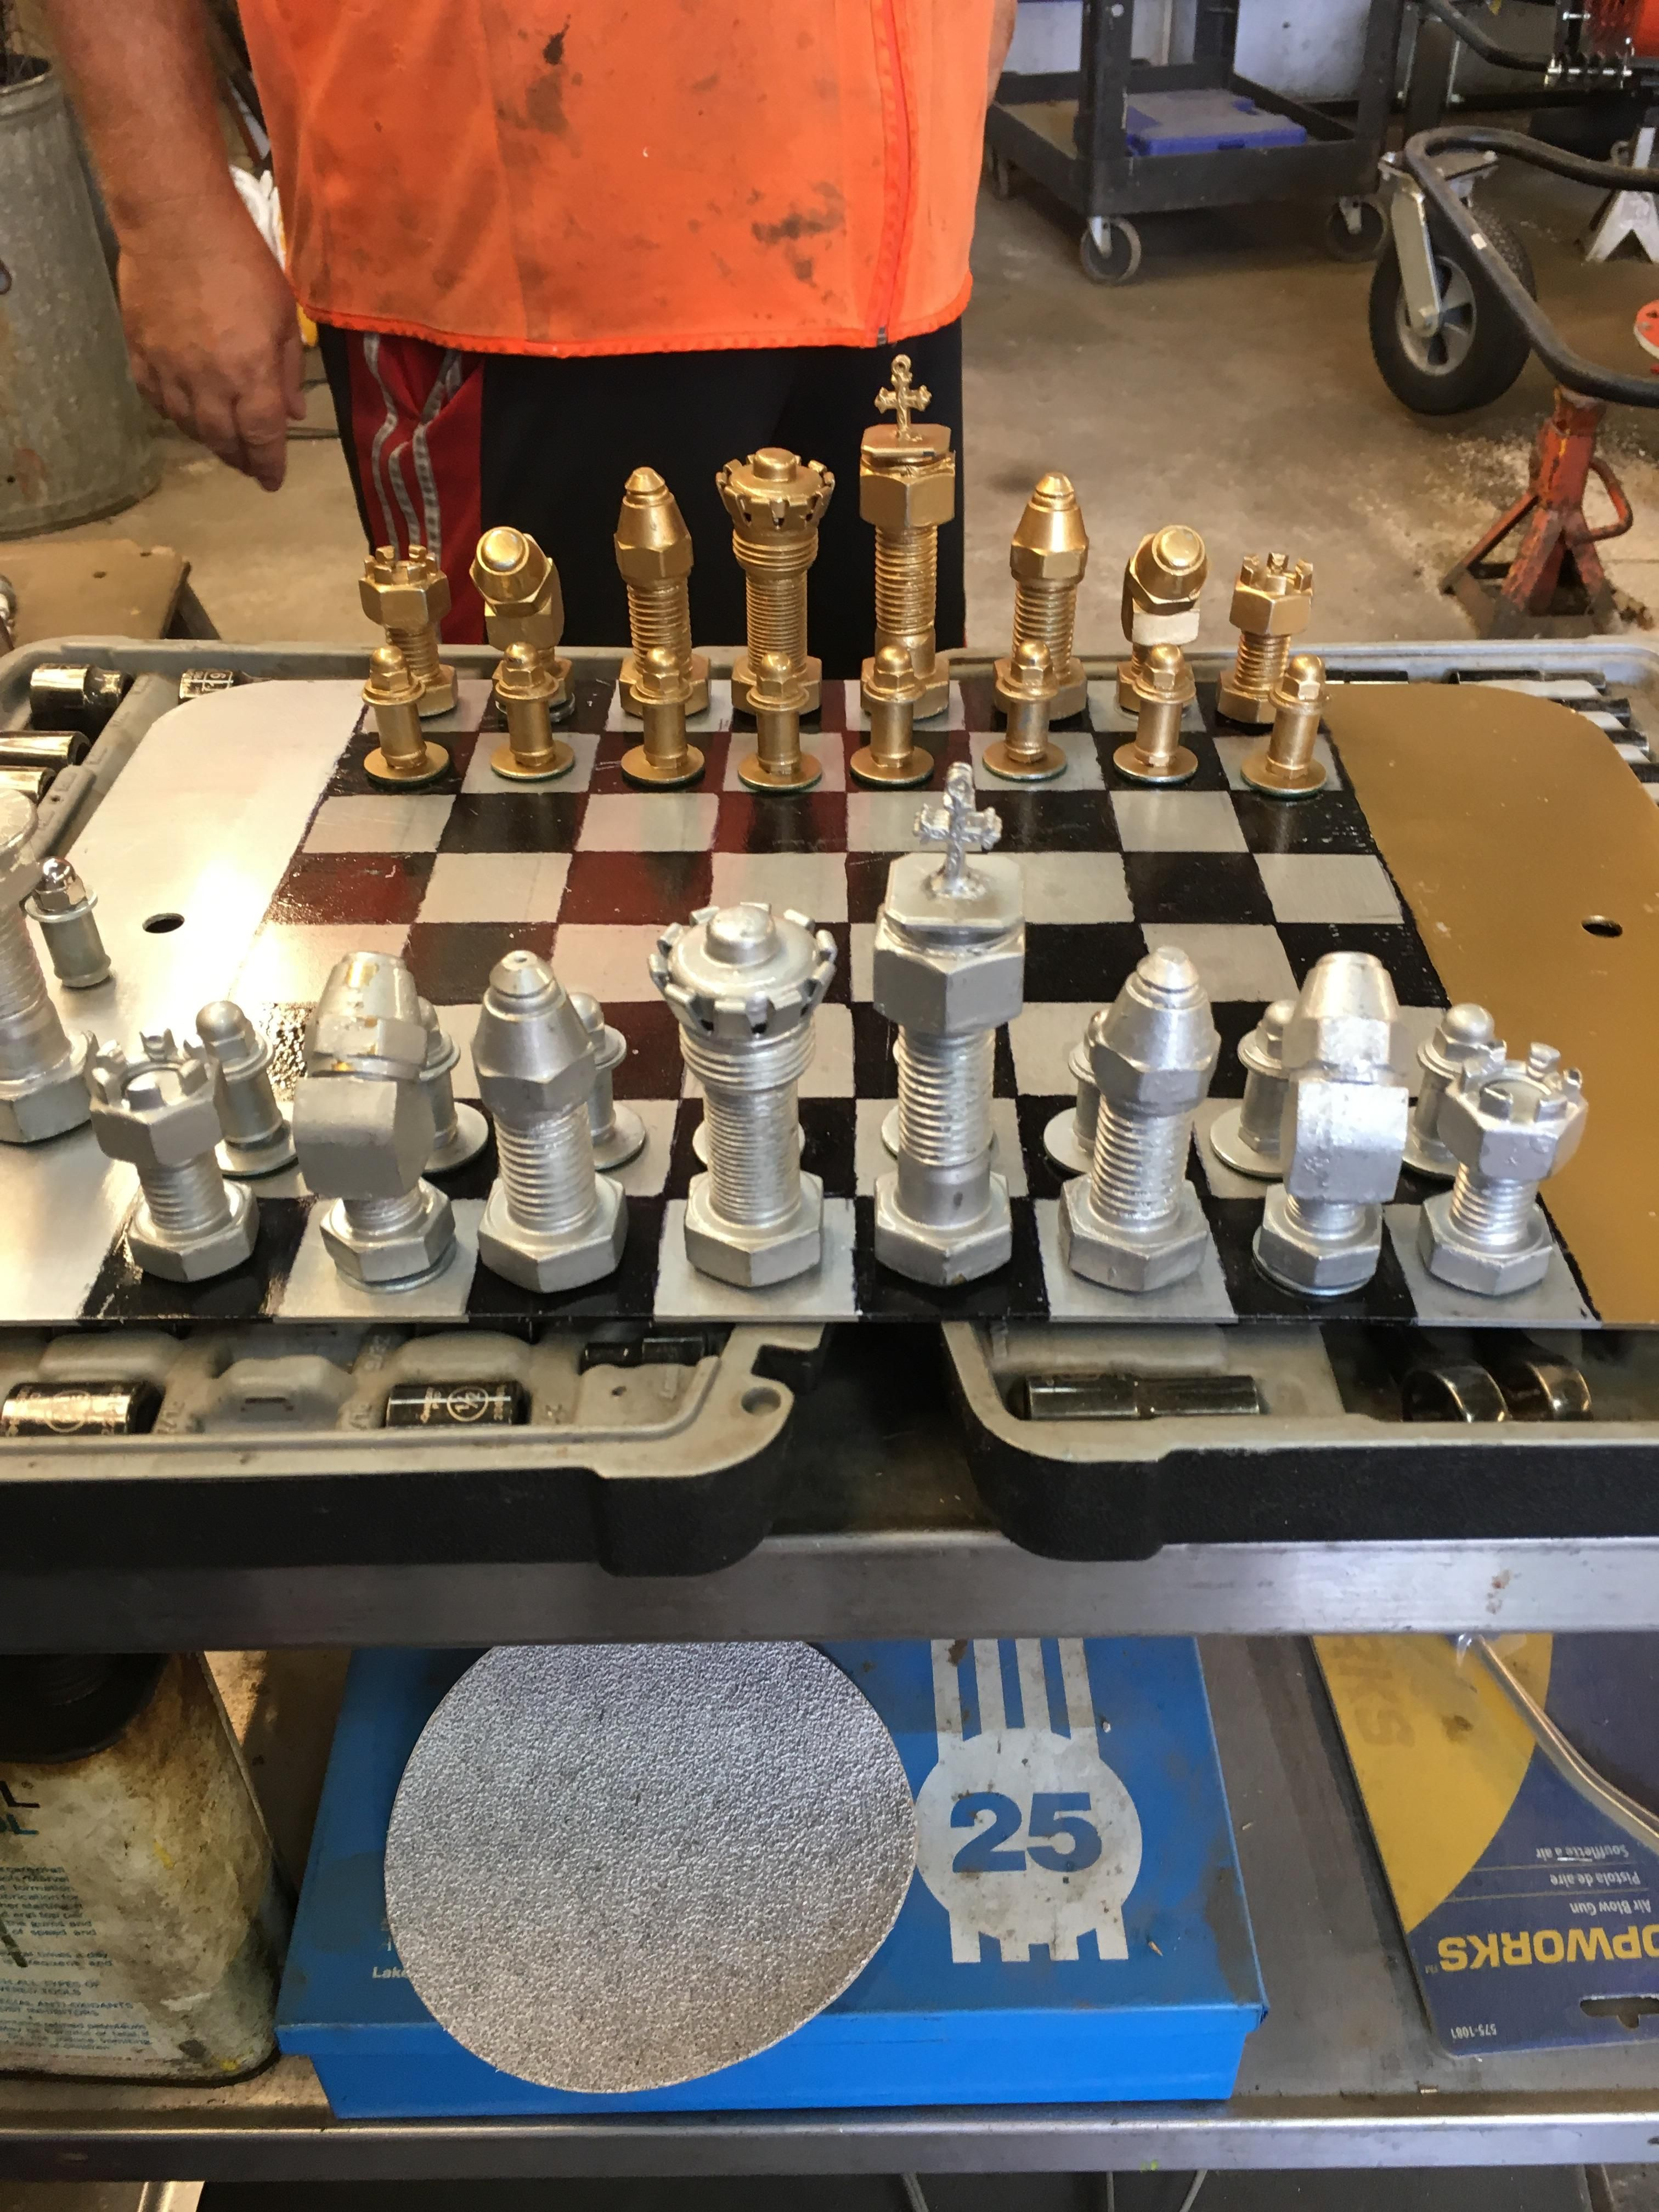 A chess set my coworker made out of leftover nuts and